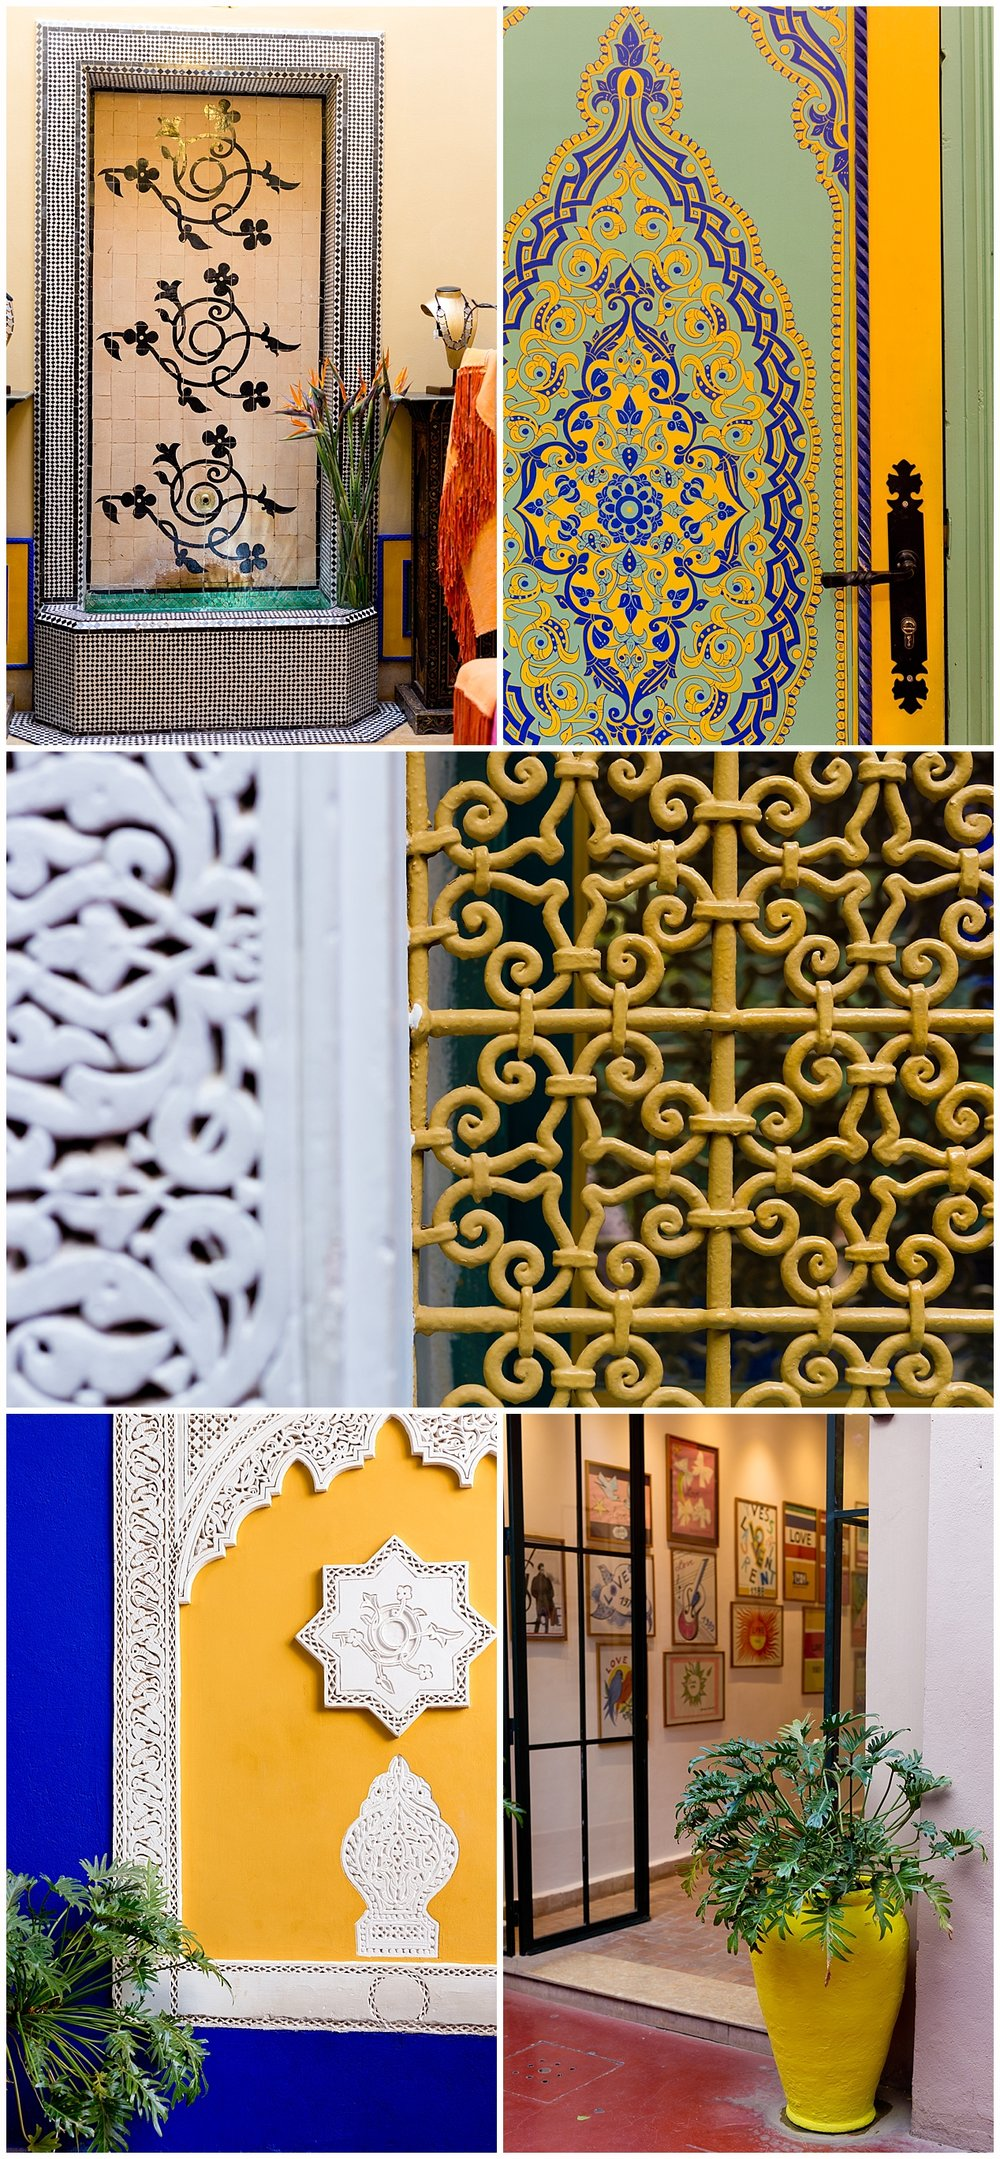 architectural details in Jardin Majorelle, Marrakech, Morocco